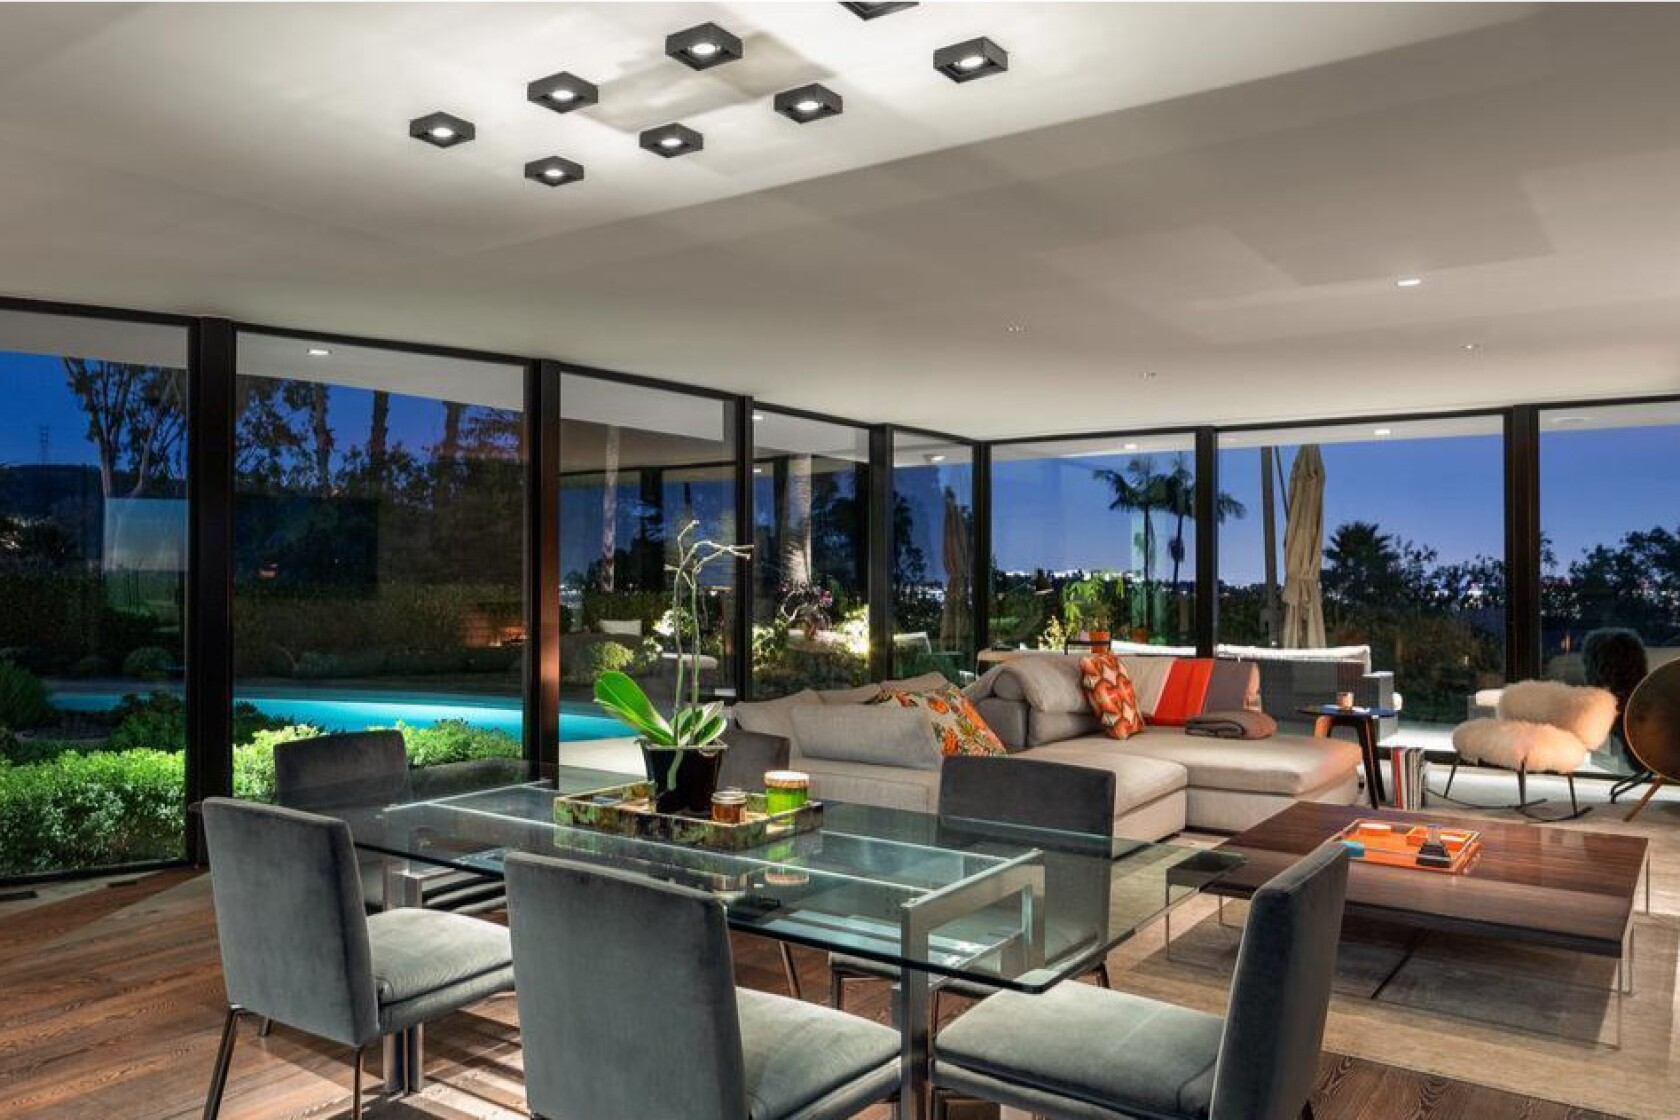 Elon Musk's former Brentwood home bores its way onto the